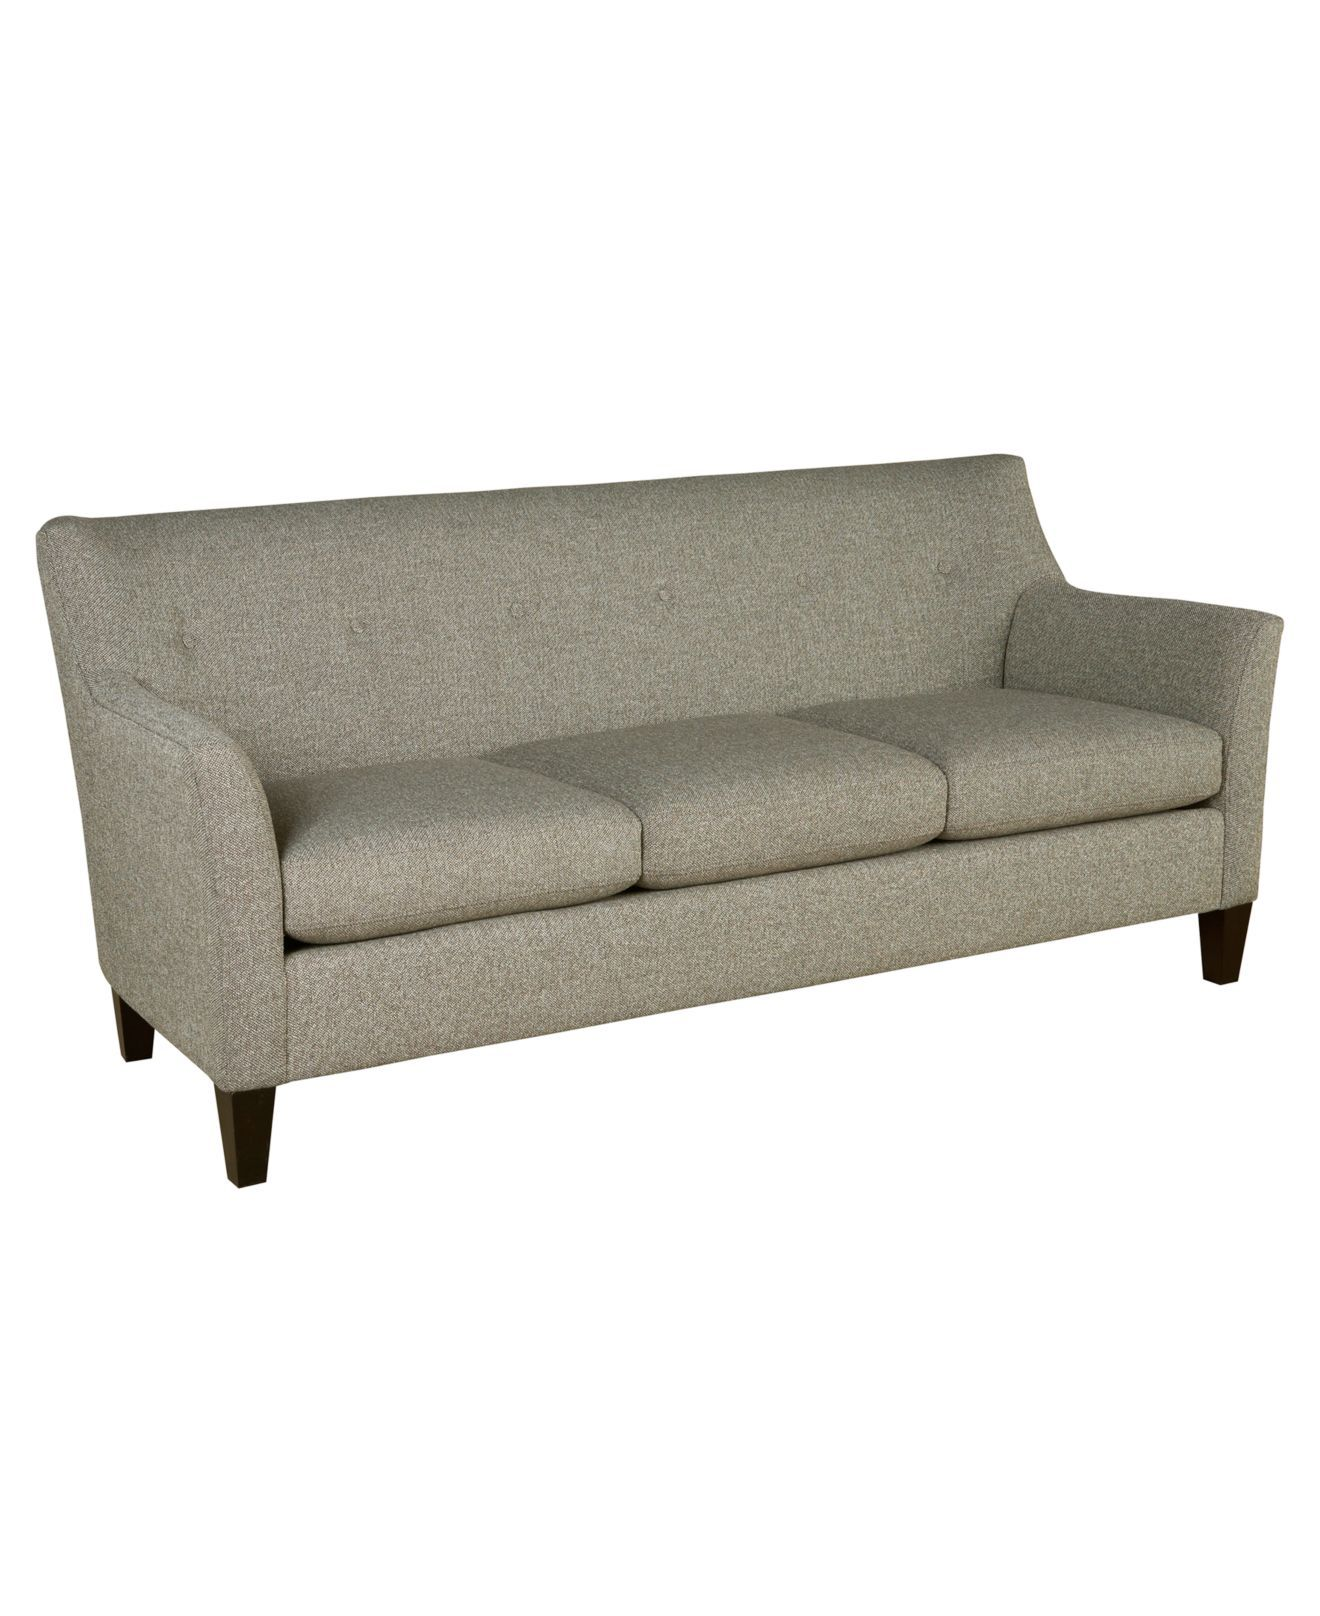 Arlene Fabric Sofa 78 W X 36 D X 34 H Sofas Furniture